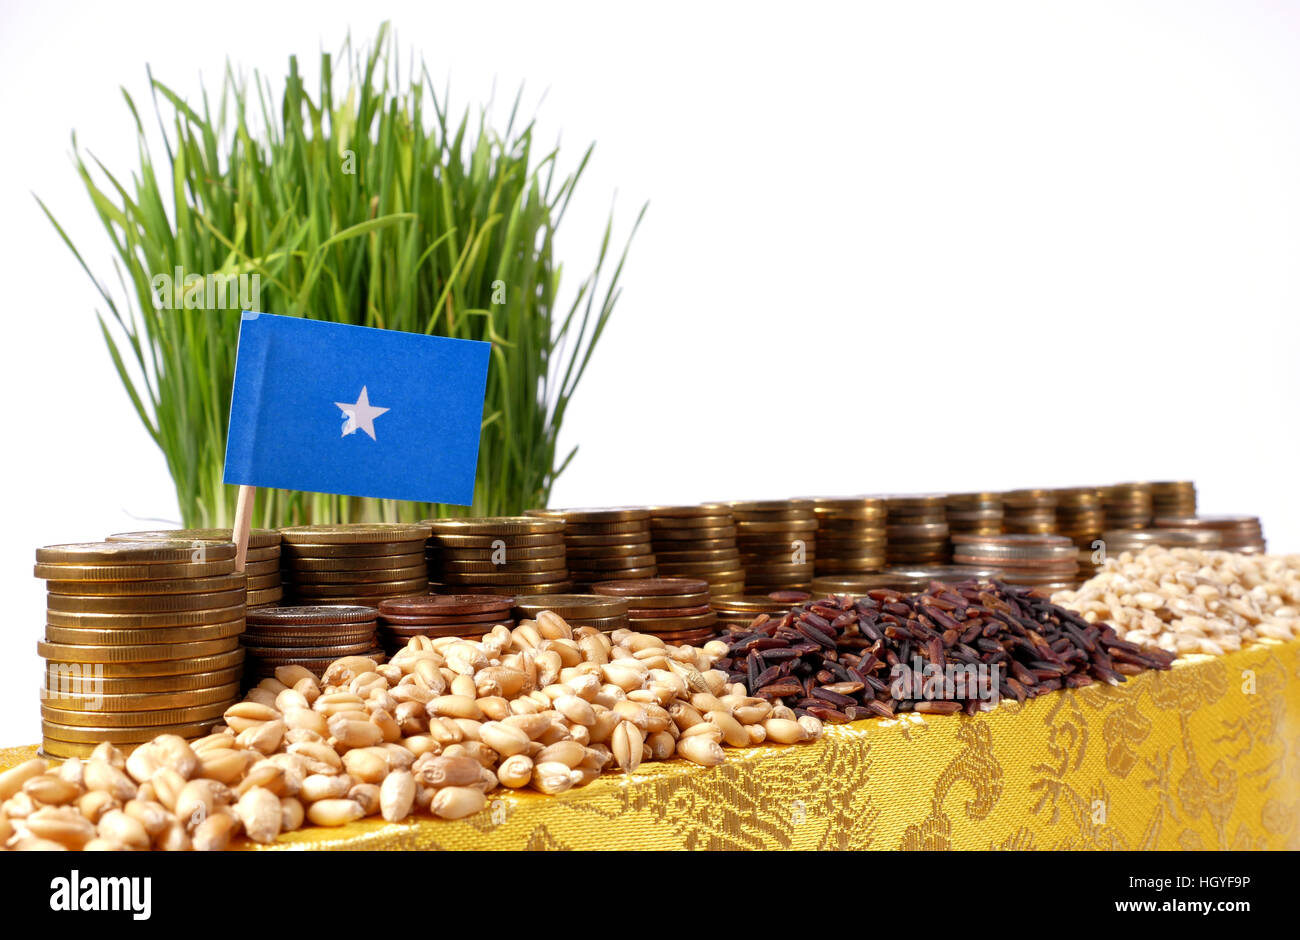 Somalia flag waving with stack of money coins and piles of wheat and rice seeds - Stock Image